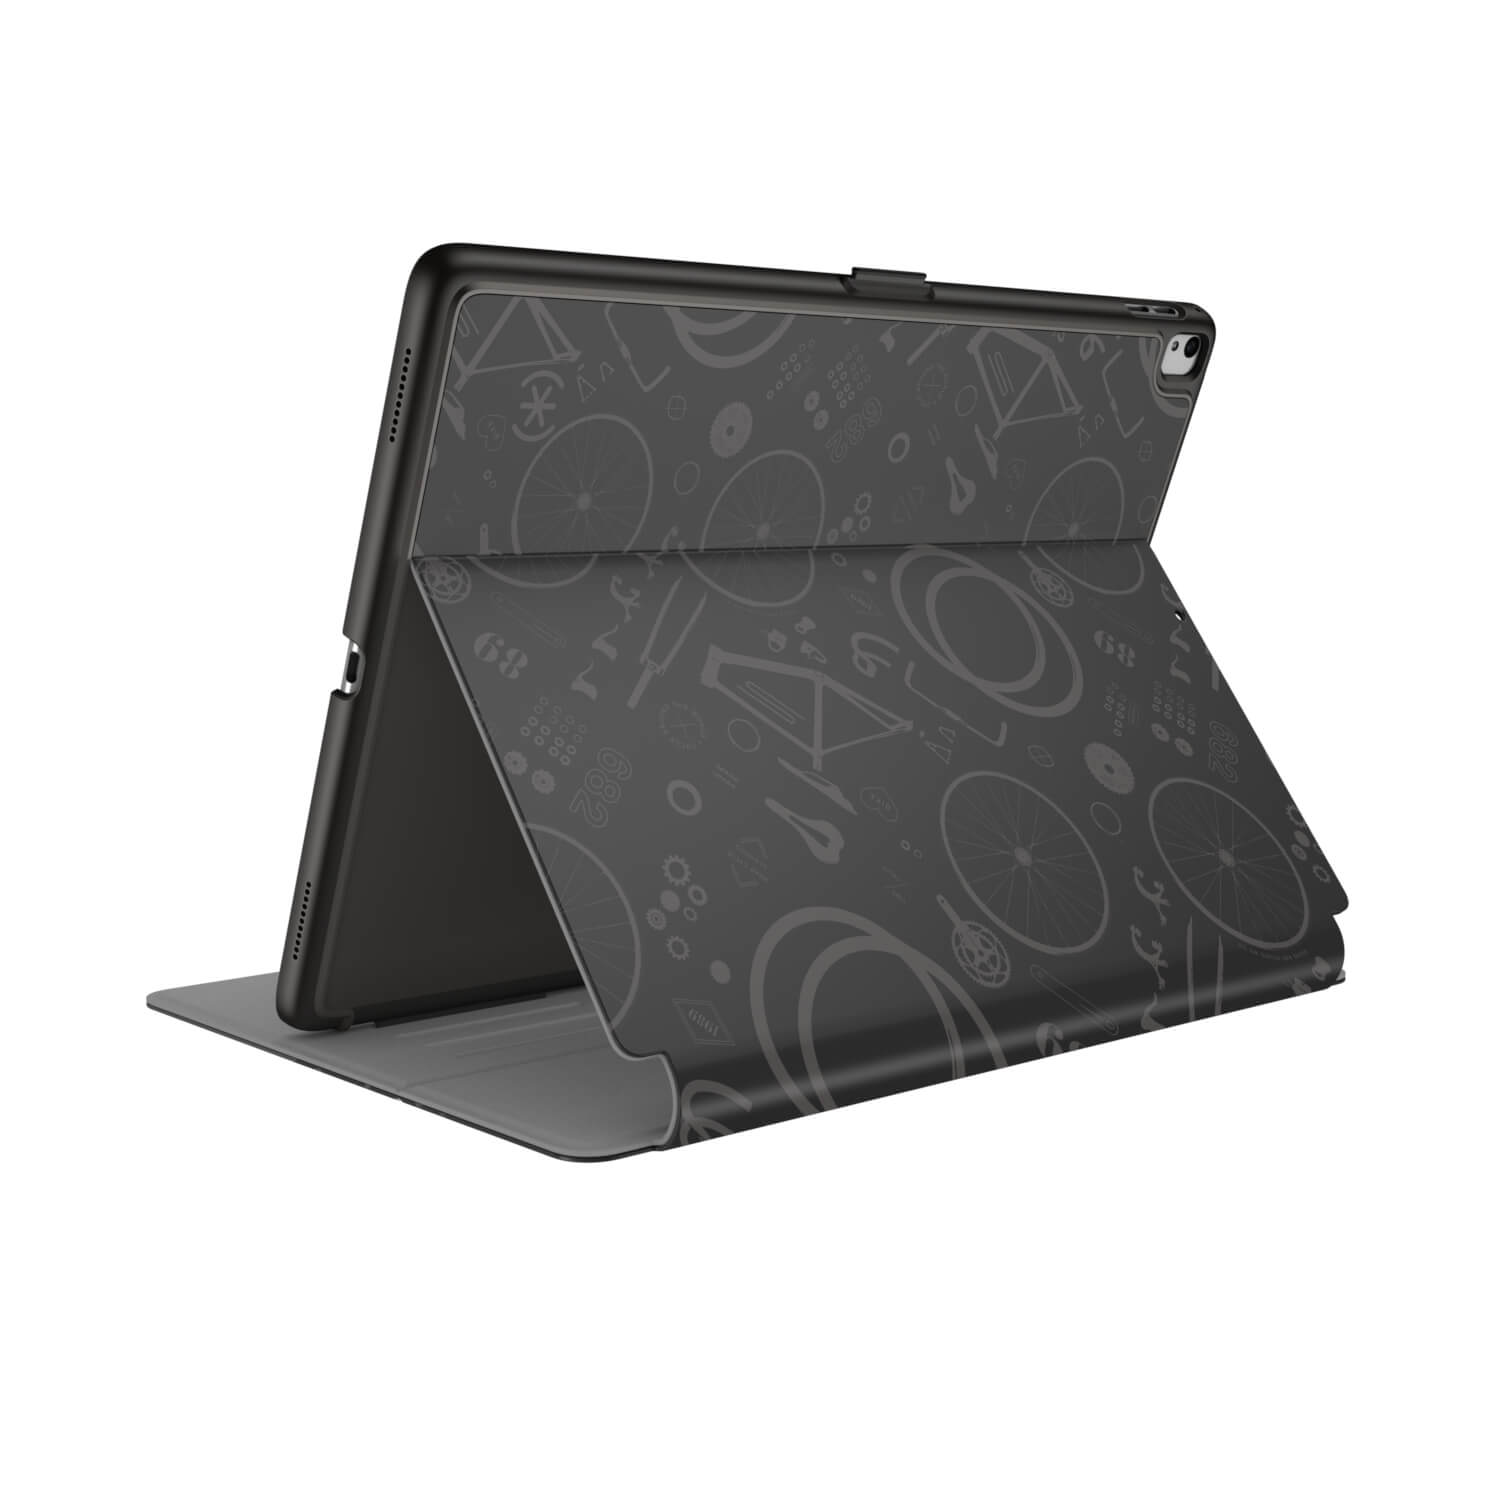 Compare prices for Speck Balance FOLIO PRINT 10.5 inch iPad Pro Cases BikeParts Black/Ash Grey